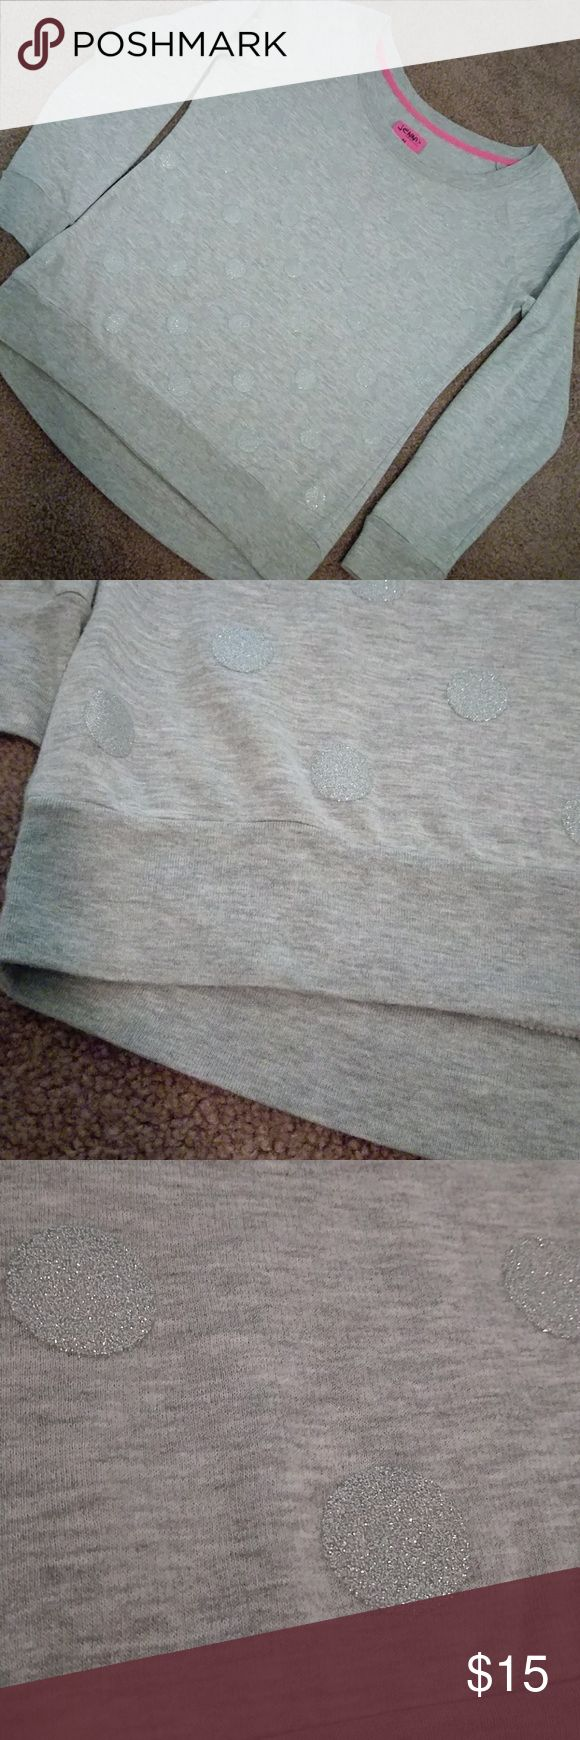 JENNI BY JENNIFER MOORE SWEATSHIRT WITH SHIMMER Great condition gray sweatshirt with shimmer sparkly circles on front only. This is super soft. Banded waist and cuffs. Machine wash. Ladies size medium. Bundle with other items for even more savings! Jenni Tops Sweatshirts & Hoodies